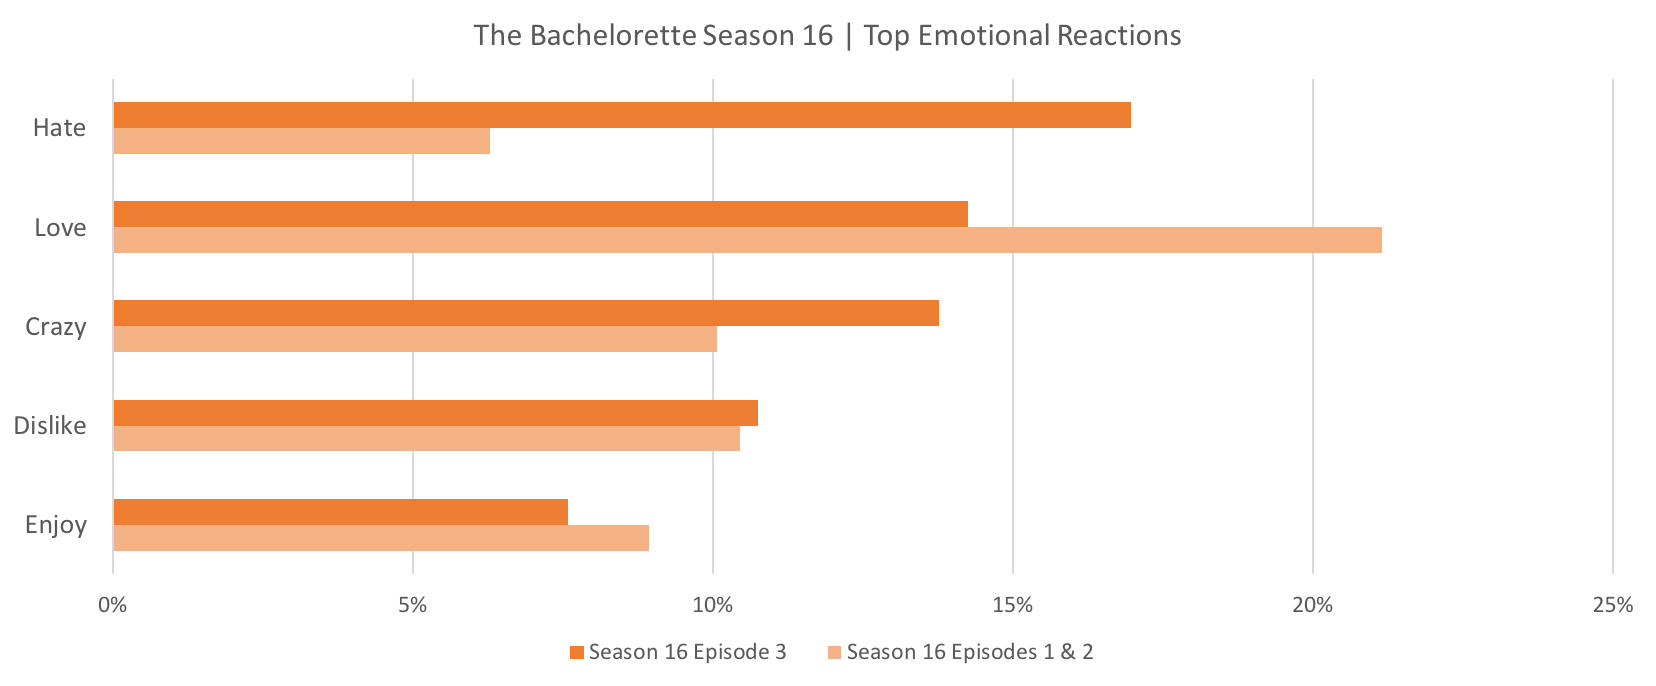 Source: Canvs Compare, The Bachelorette First 3 Episodes Airing Window + / - 3 Hours